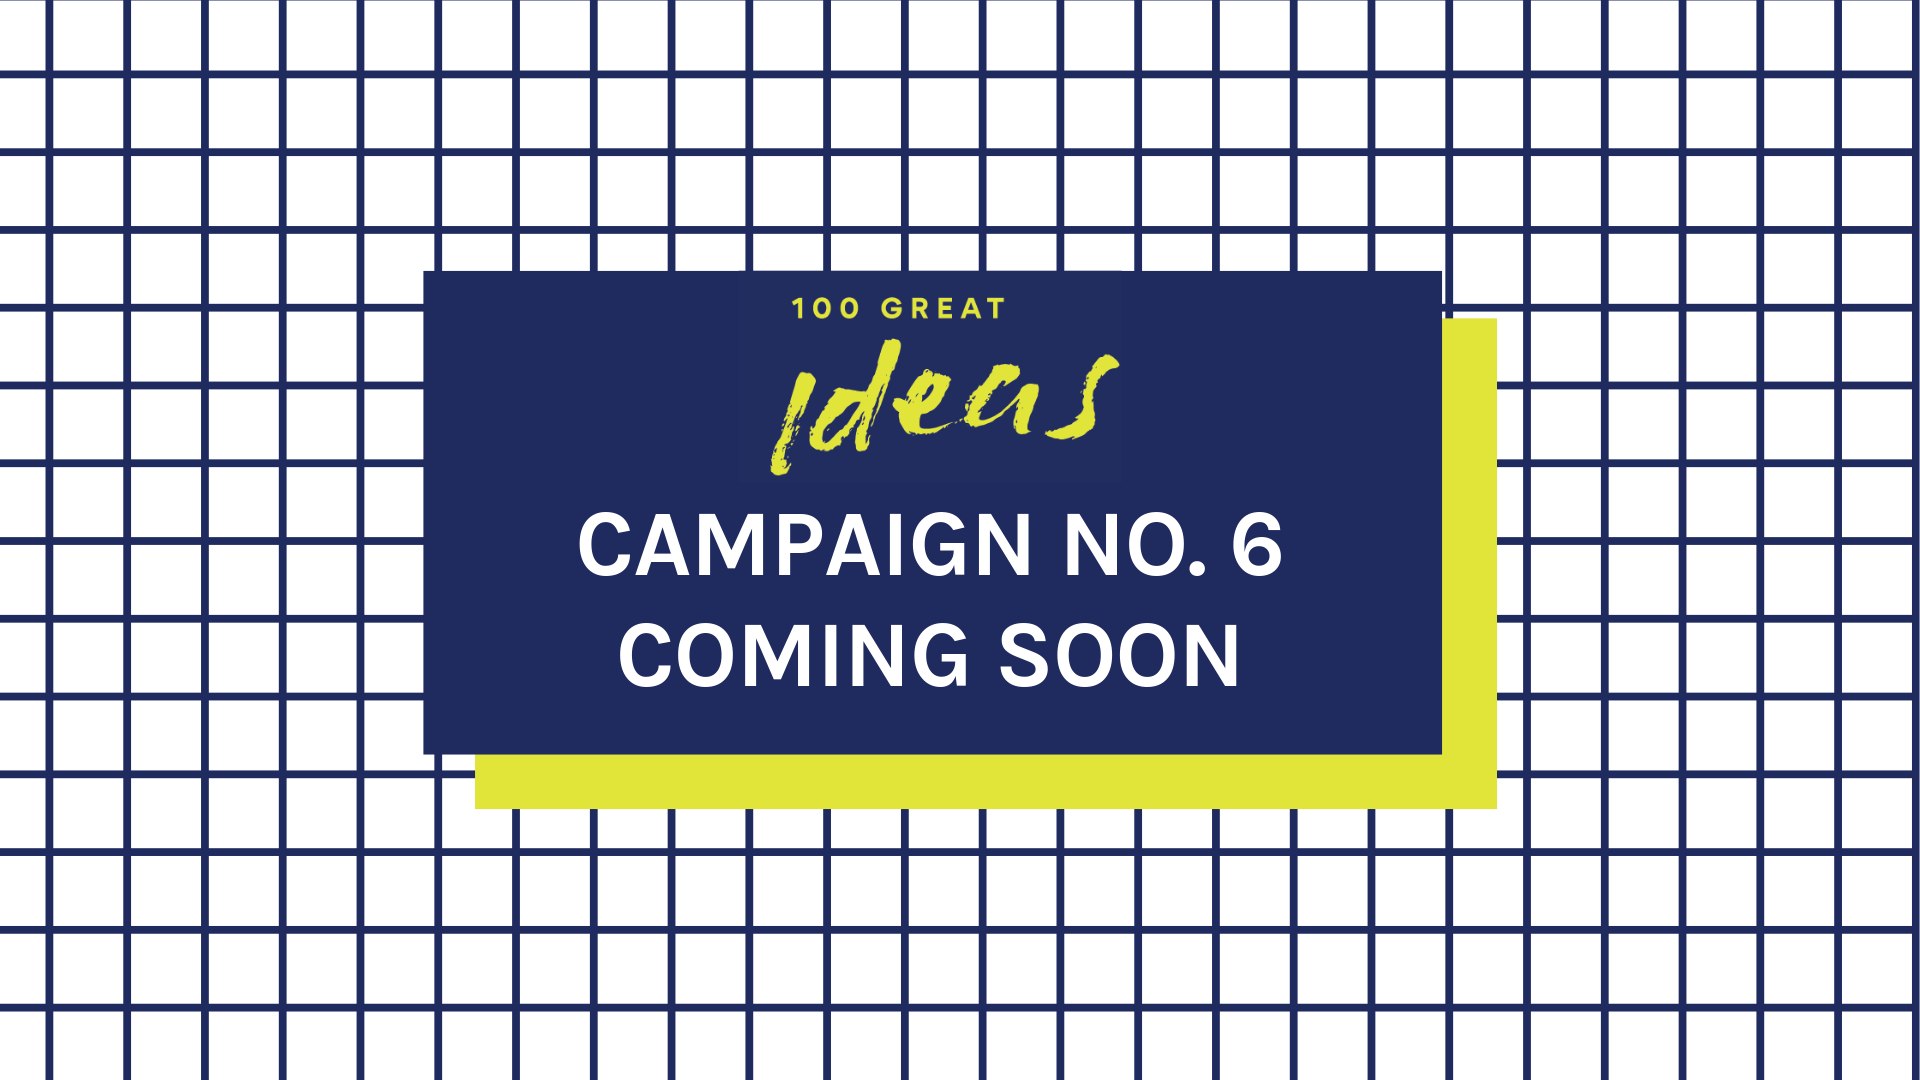 Radical Partners 100 Great Ideas Campaign 6 Coming Soon